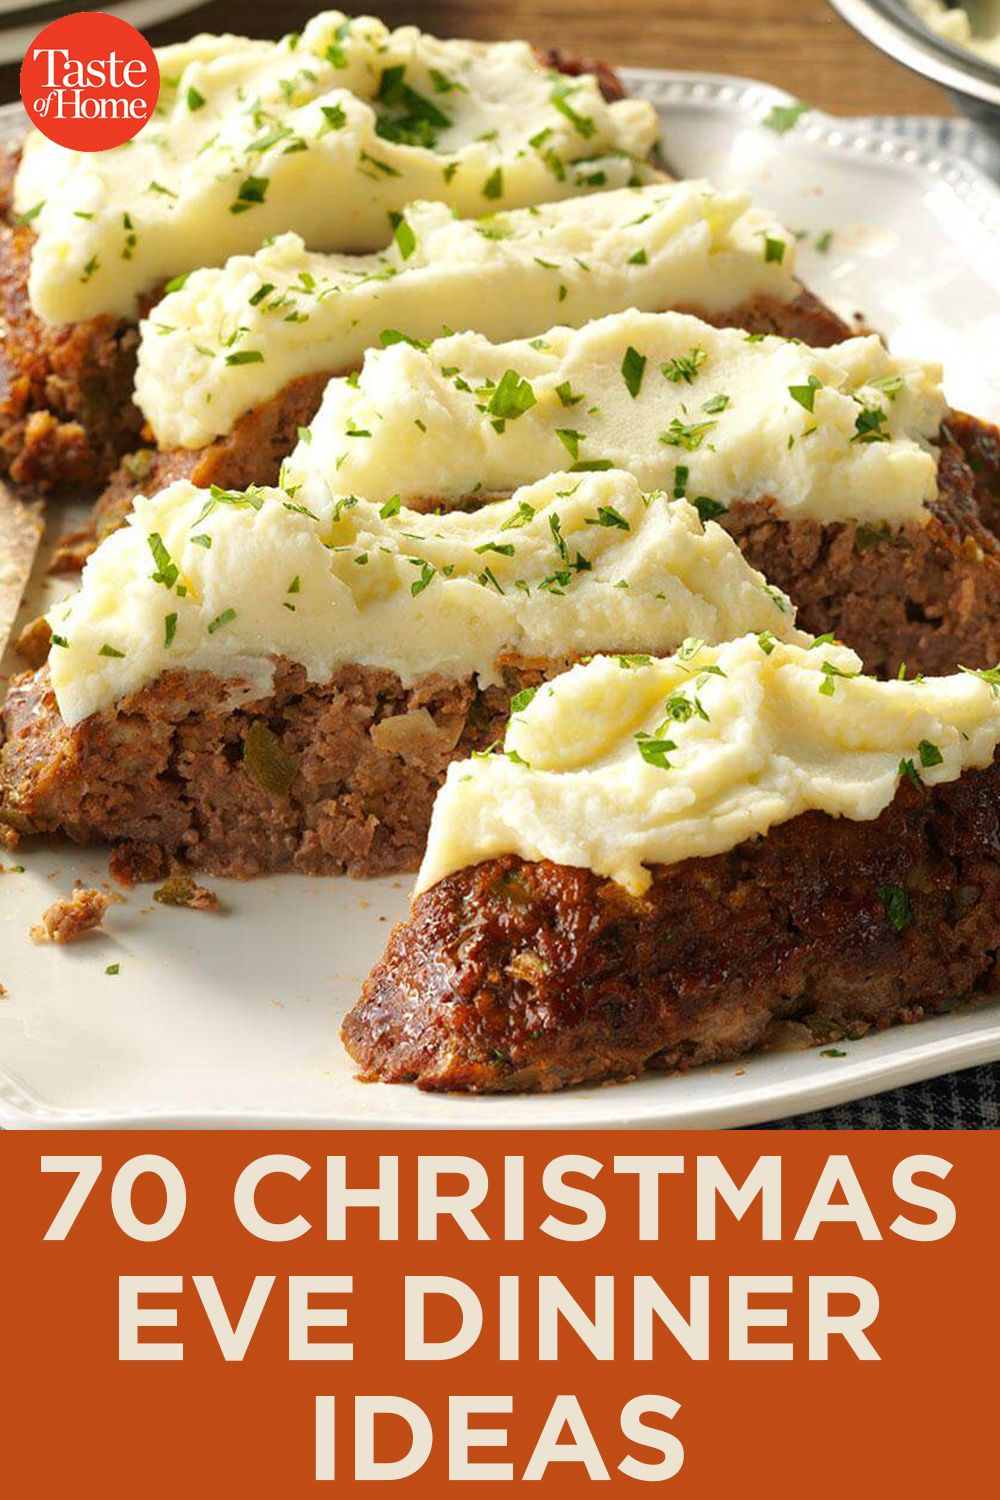 70 Traditional Christmas Eve Dinner Ideas in 2020